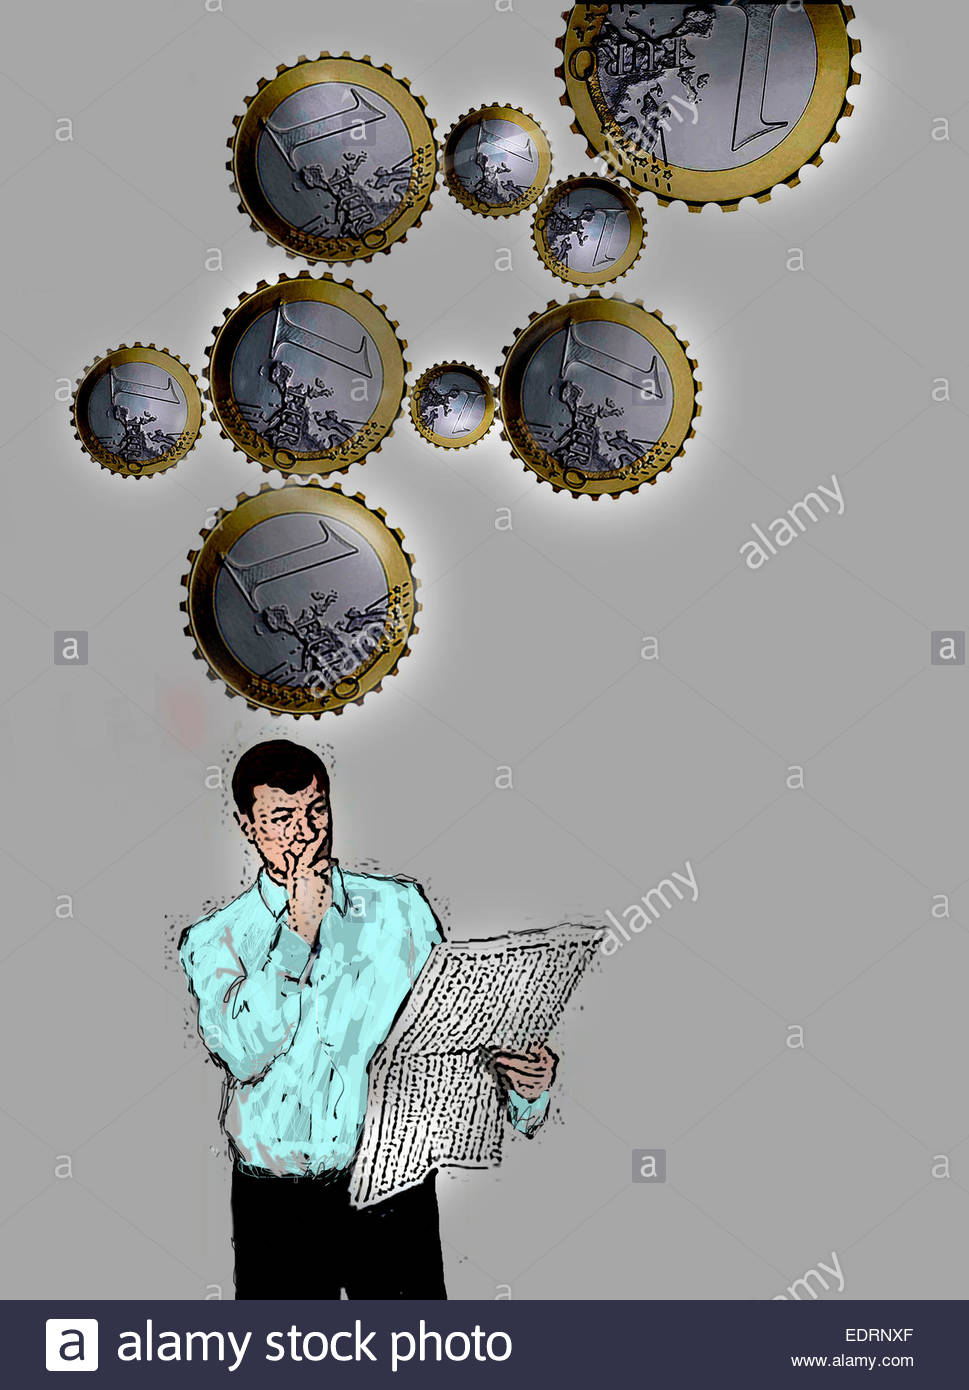 Euro coin cogs above man reading financial newspaper thinking about investments - Stock Image